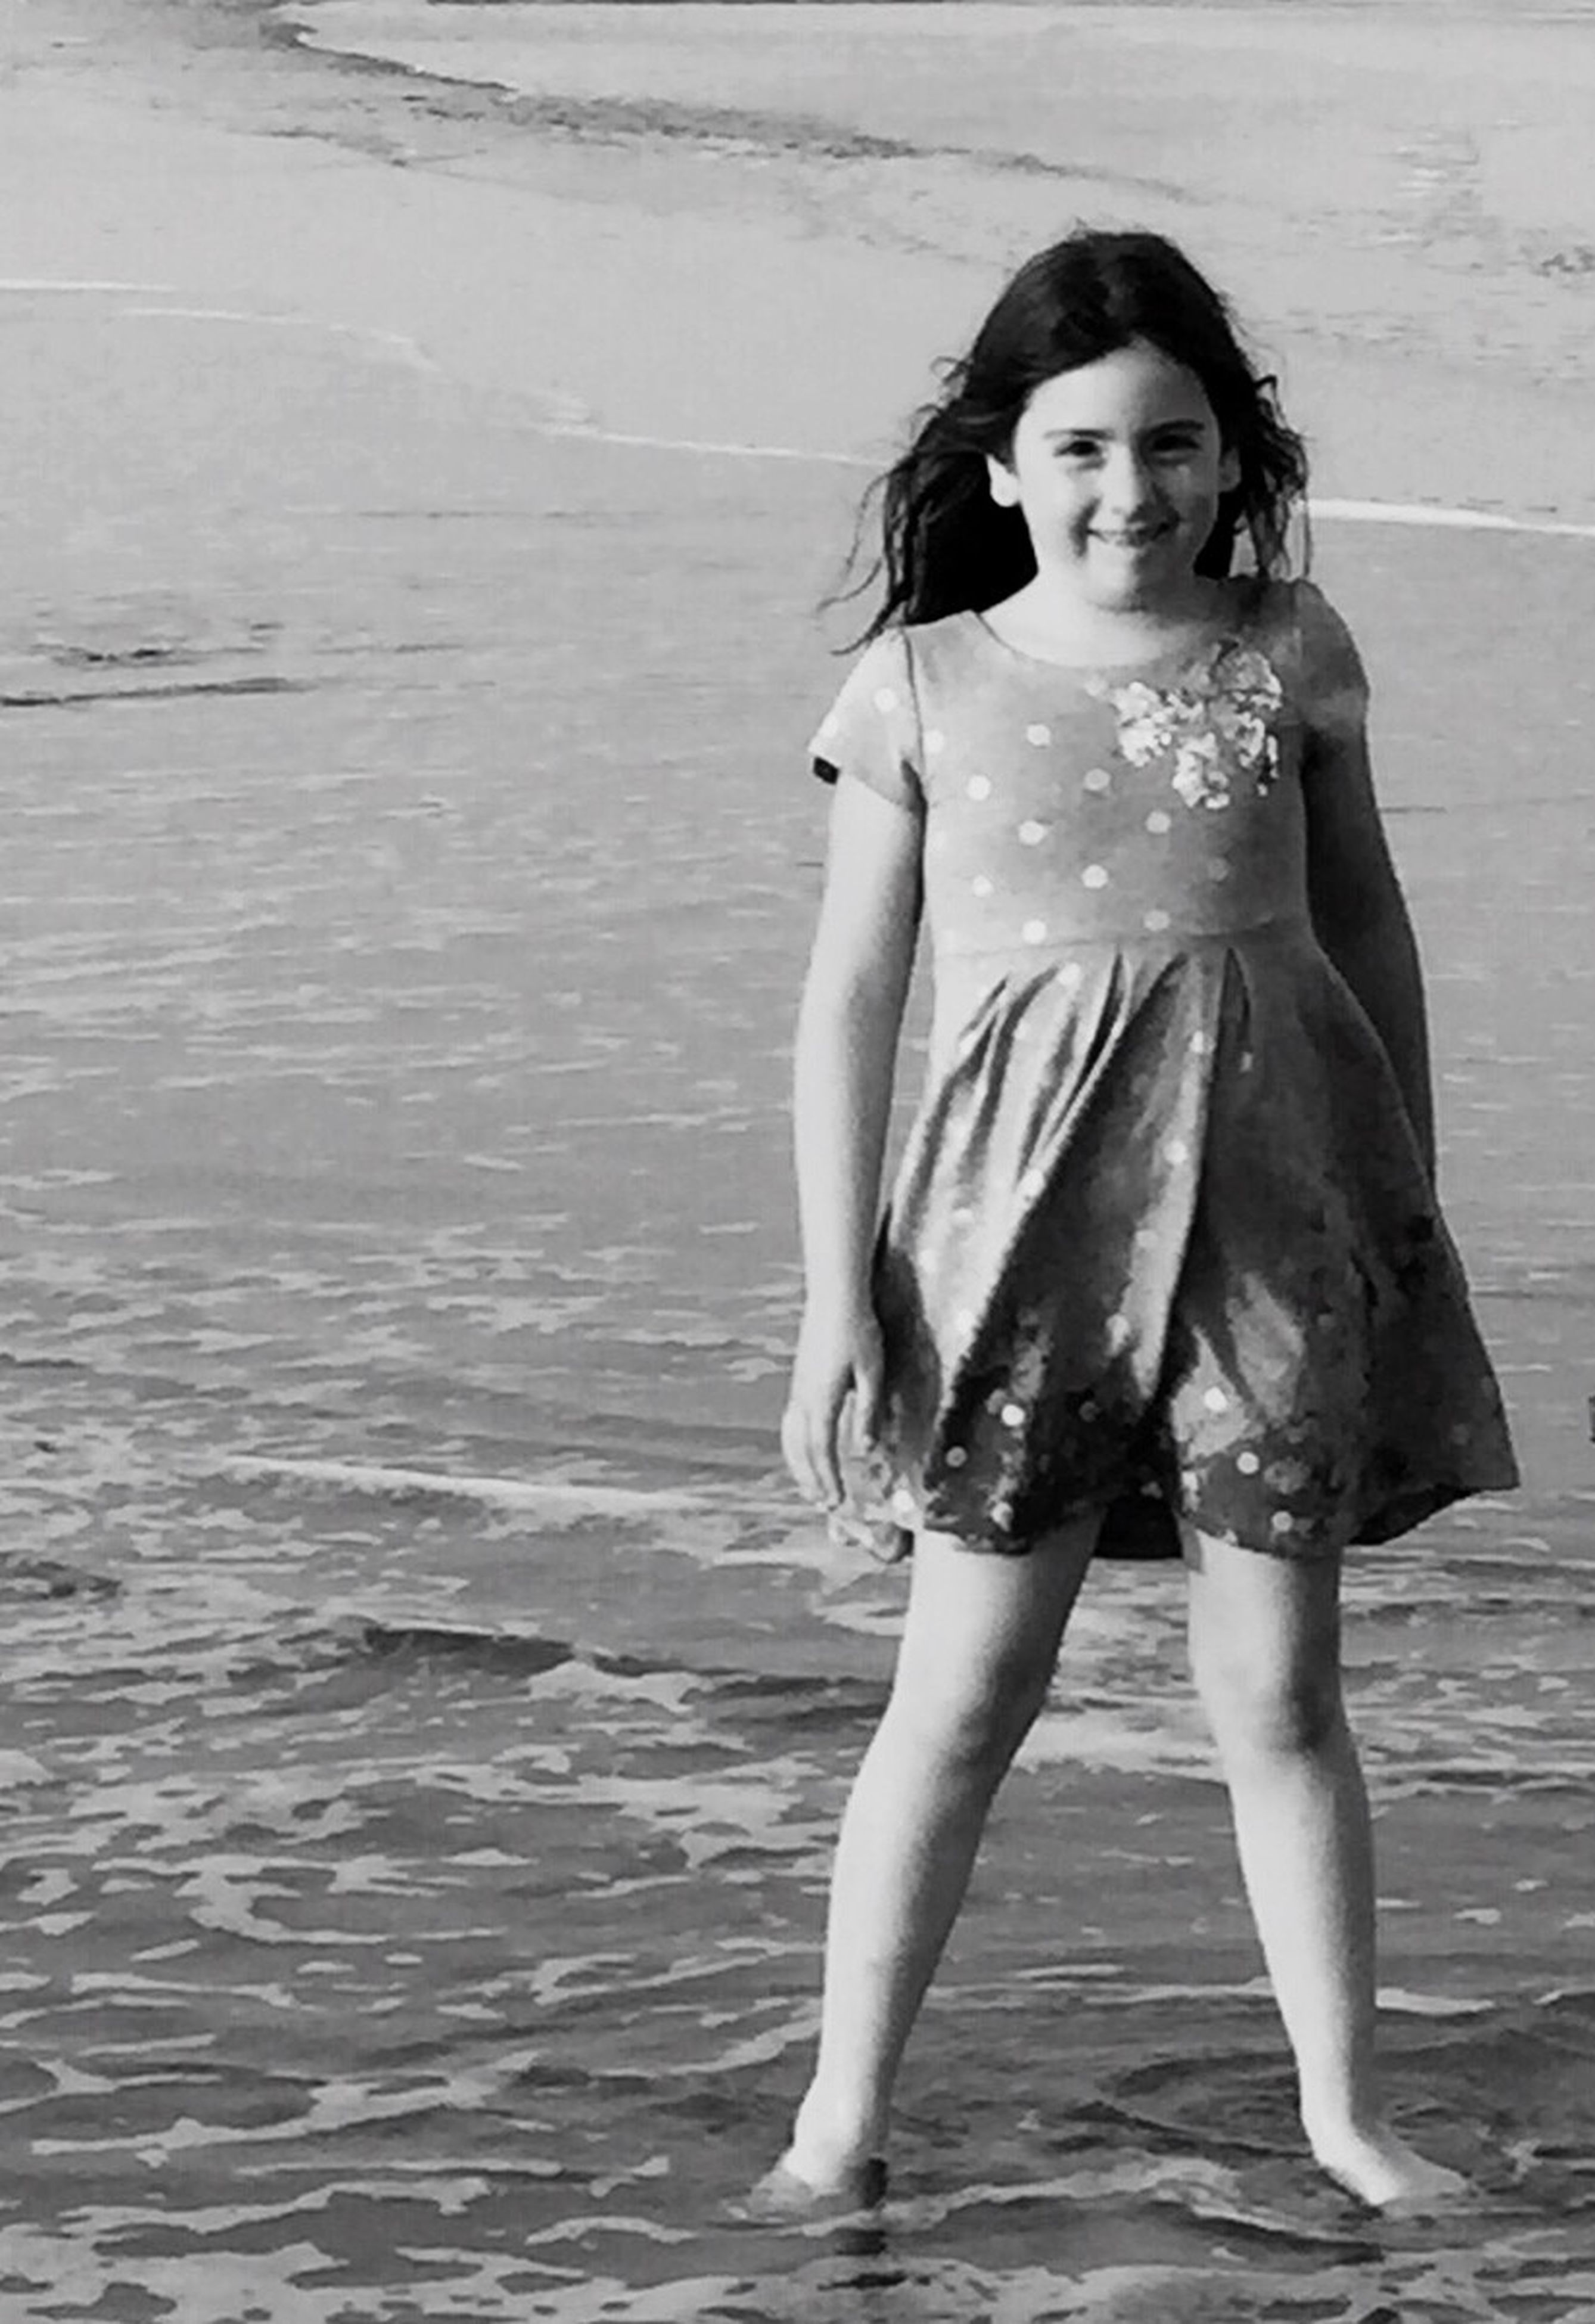 person, childhood, full length, water, lifestyles, leisure activity, elementary age, girls, casual clothing, beach, happiness, innocence, standing, front view, boys, smiling, enjoyment, cute